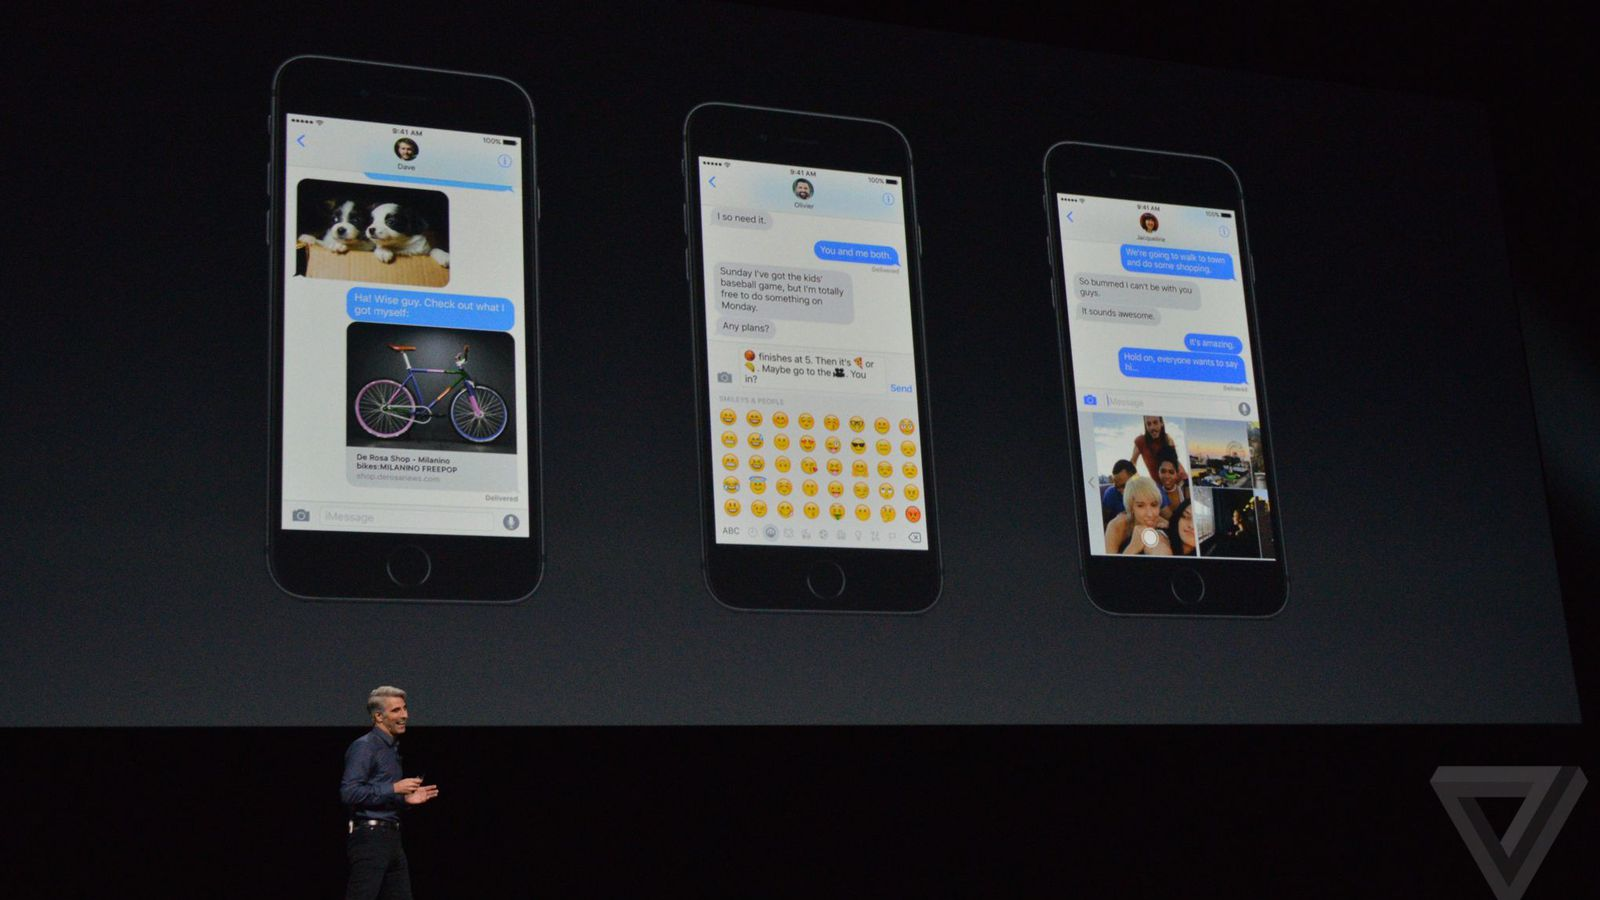 Apple's iMessage strategy: steal from Snapchat and Facebook